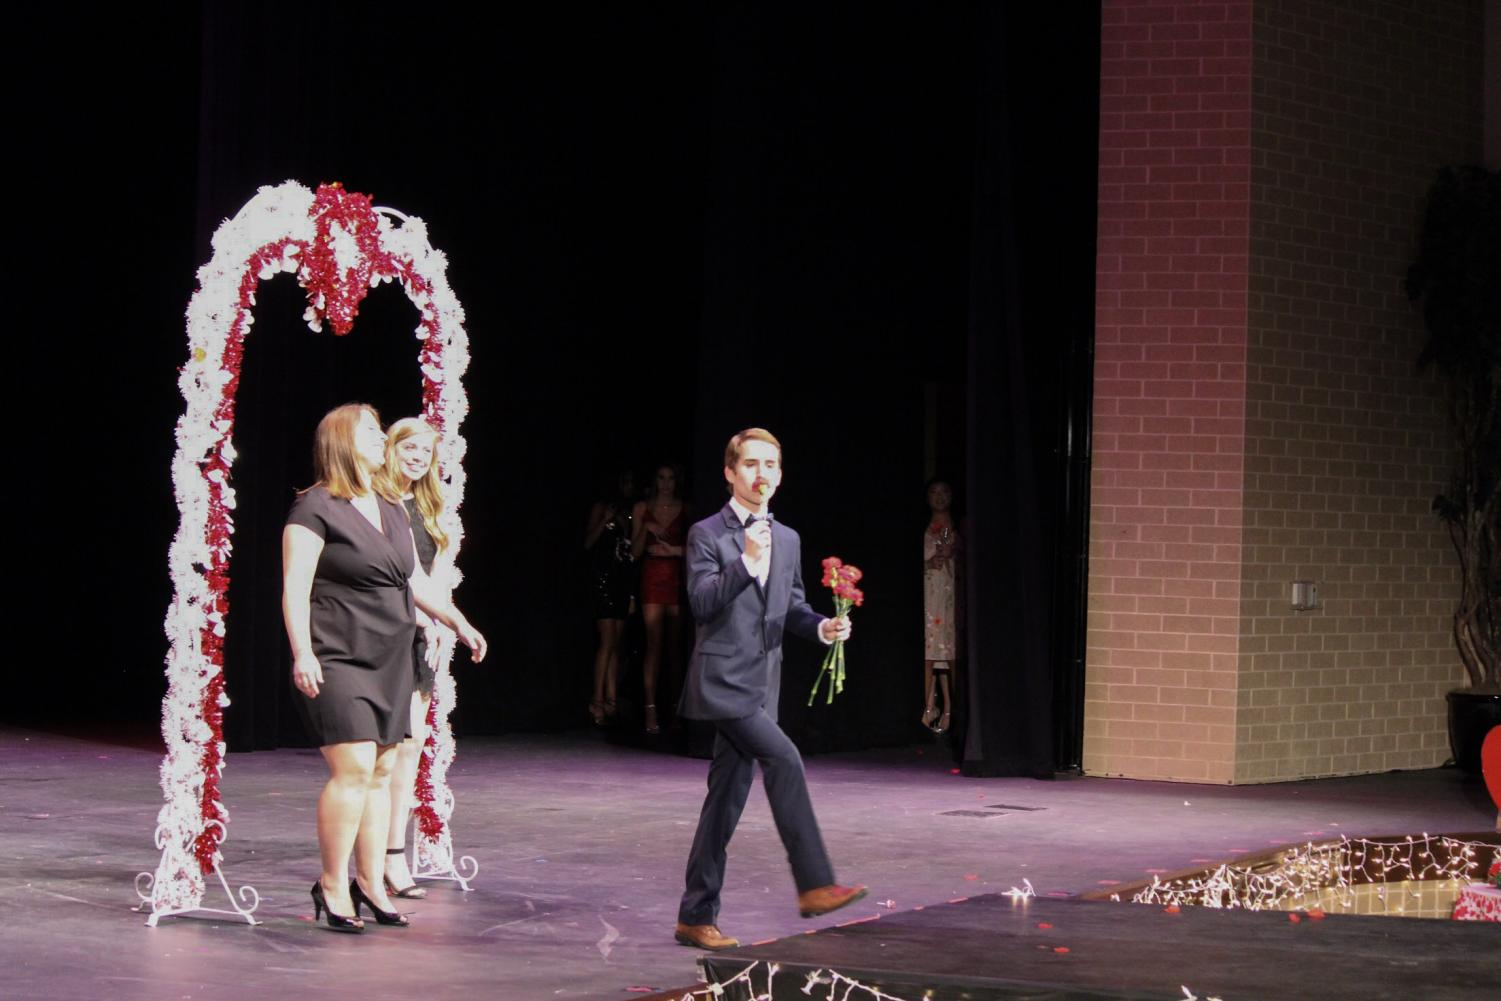 Senior+Alek+Jordan+kisses+a+flower+before+throwing+it+to+the+crowd.